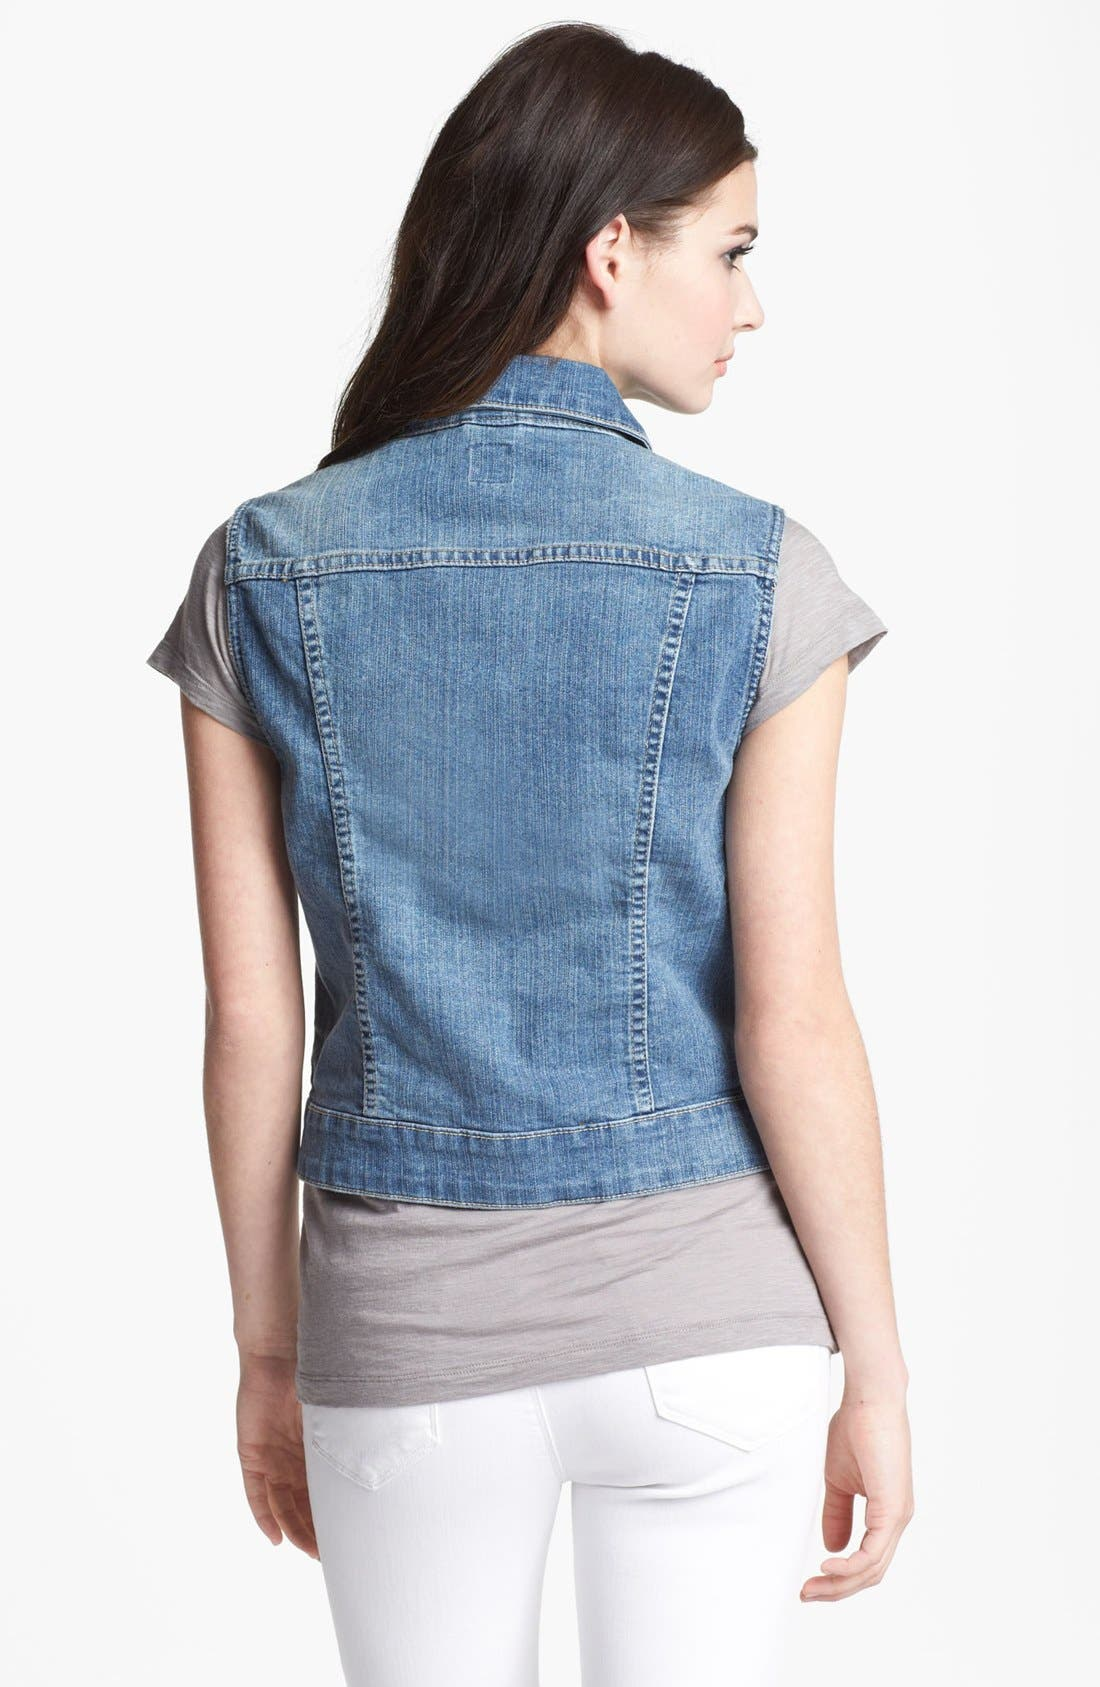 Alternate Image 2  - Jag Jeans 'Camden' Denim Vest (Petite)